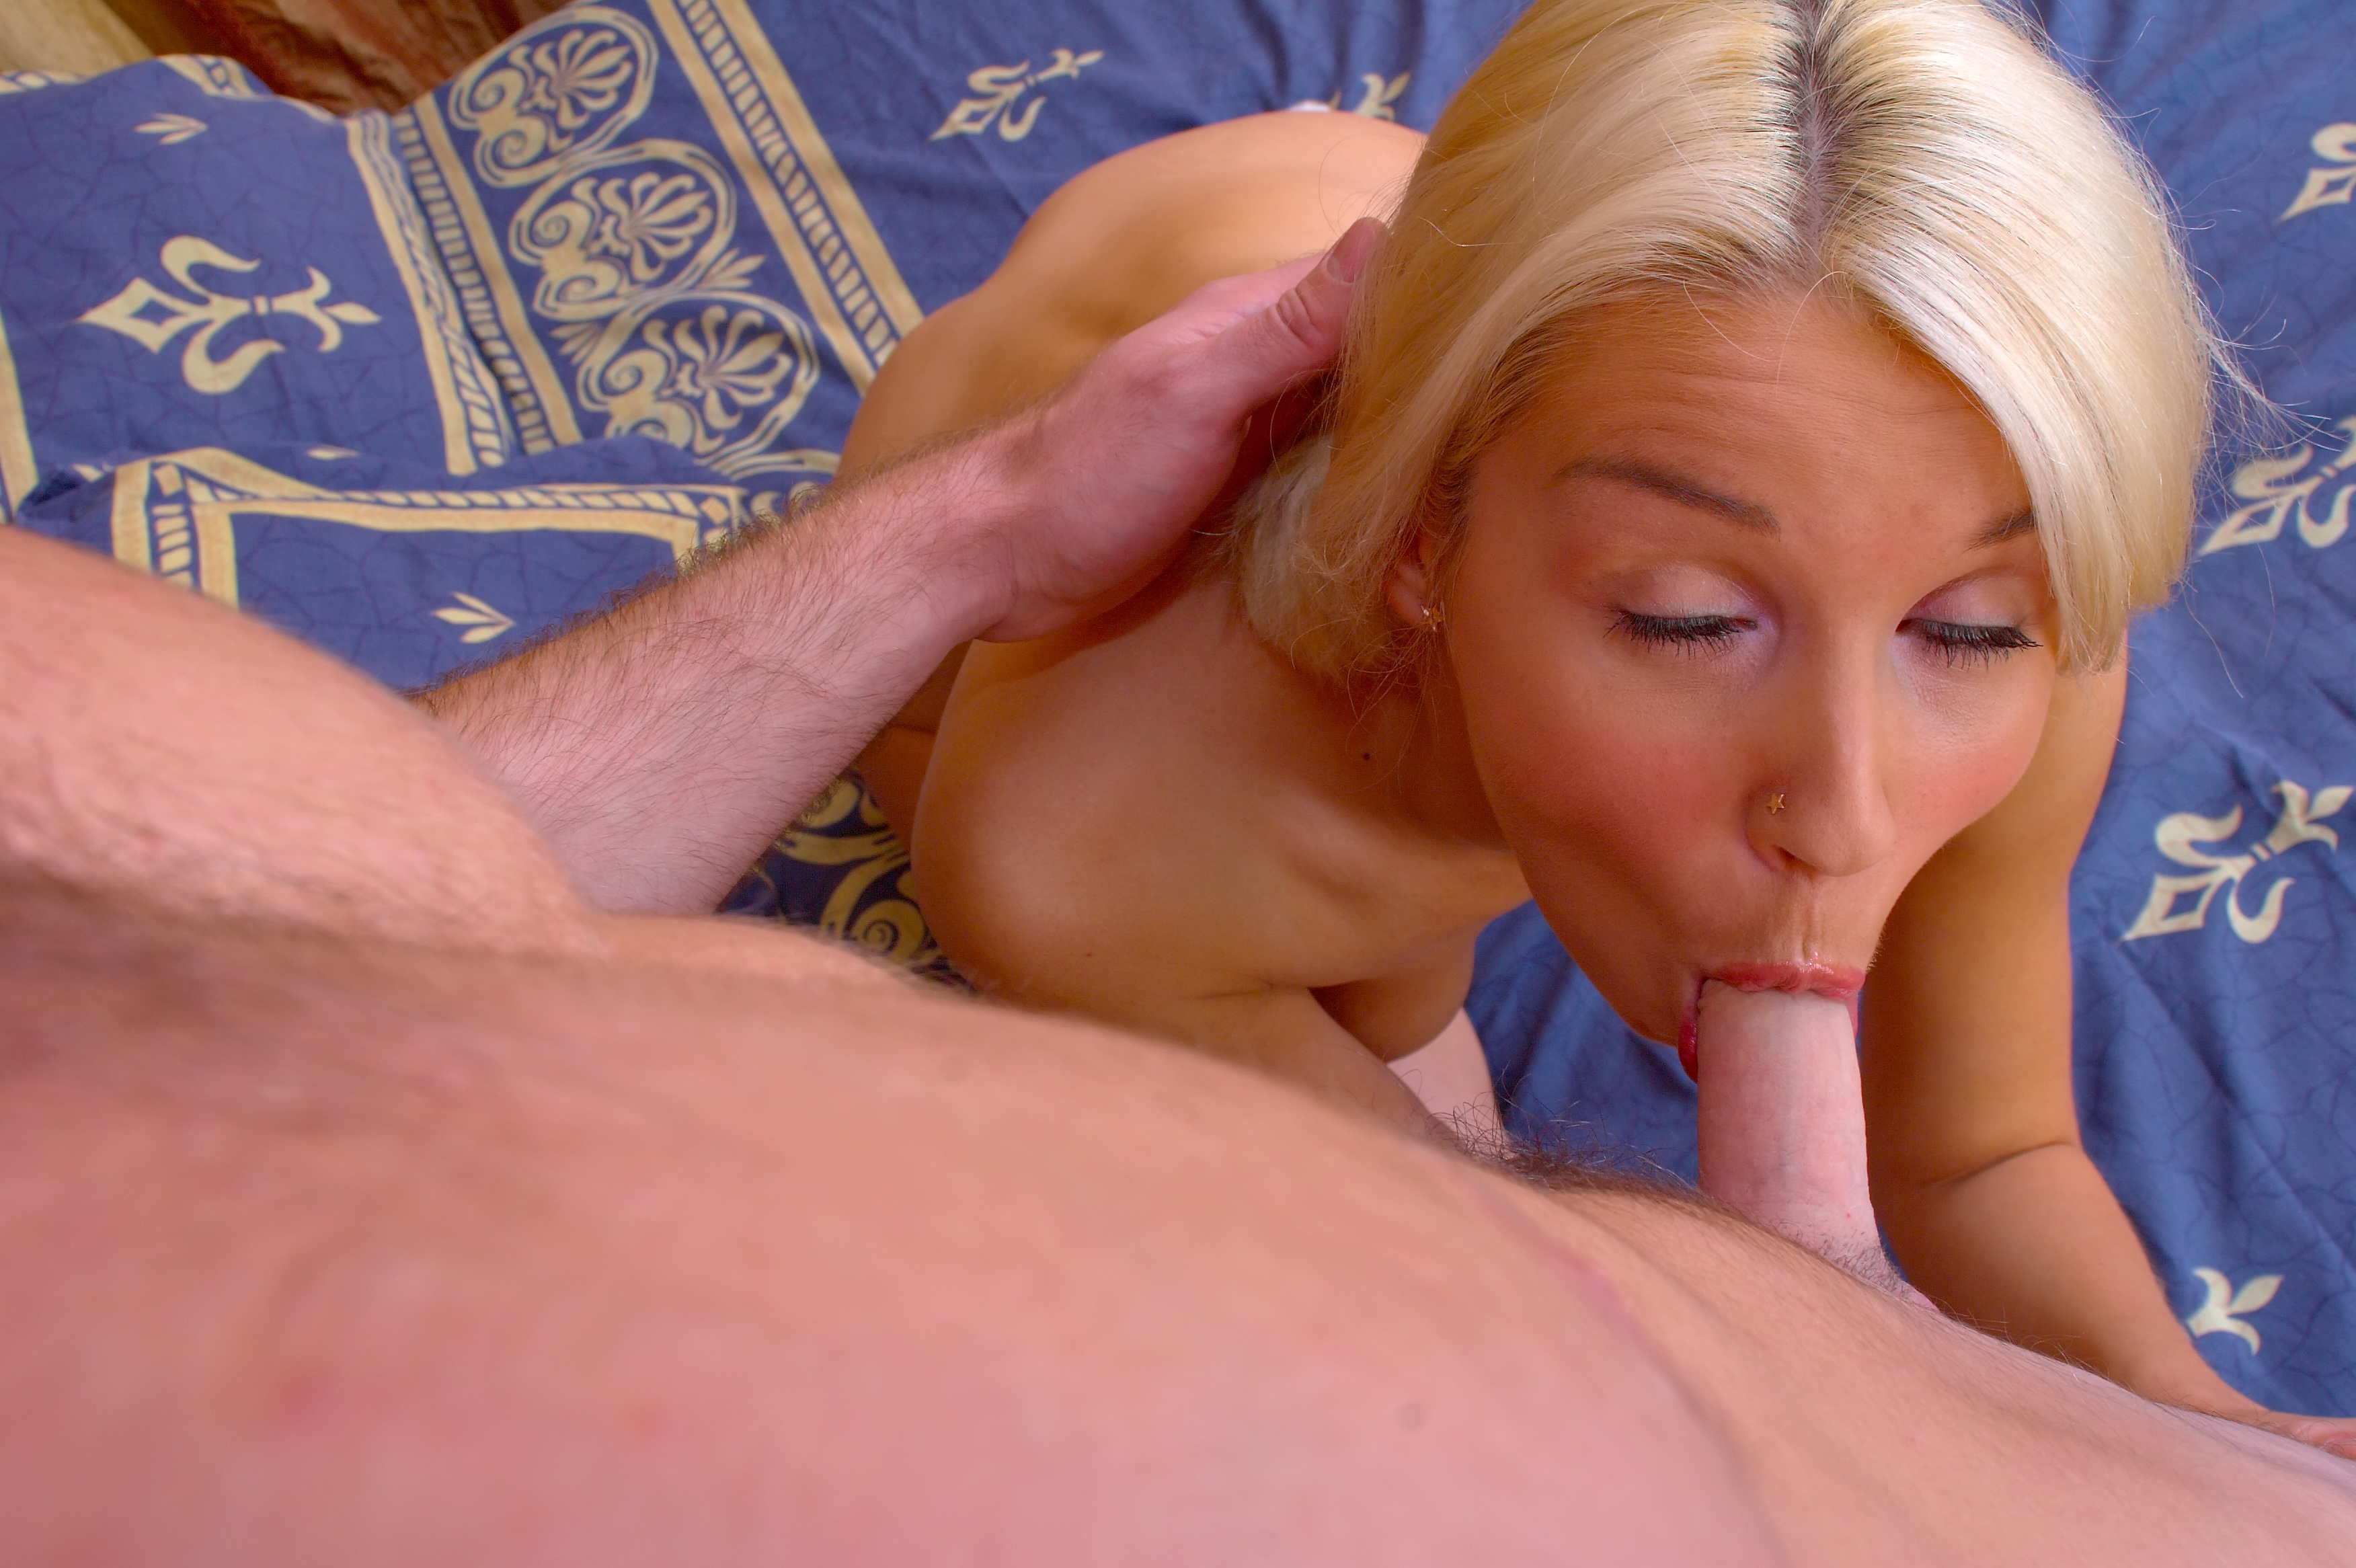 Girl elves nudemasterbating porn picture